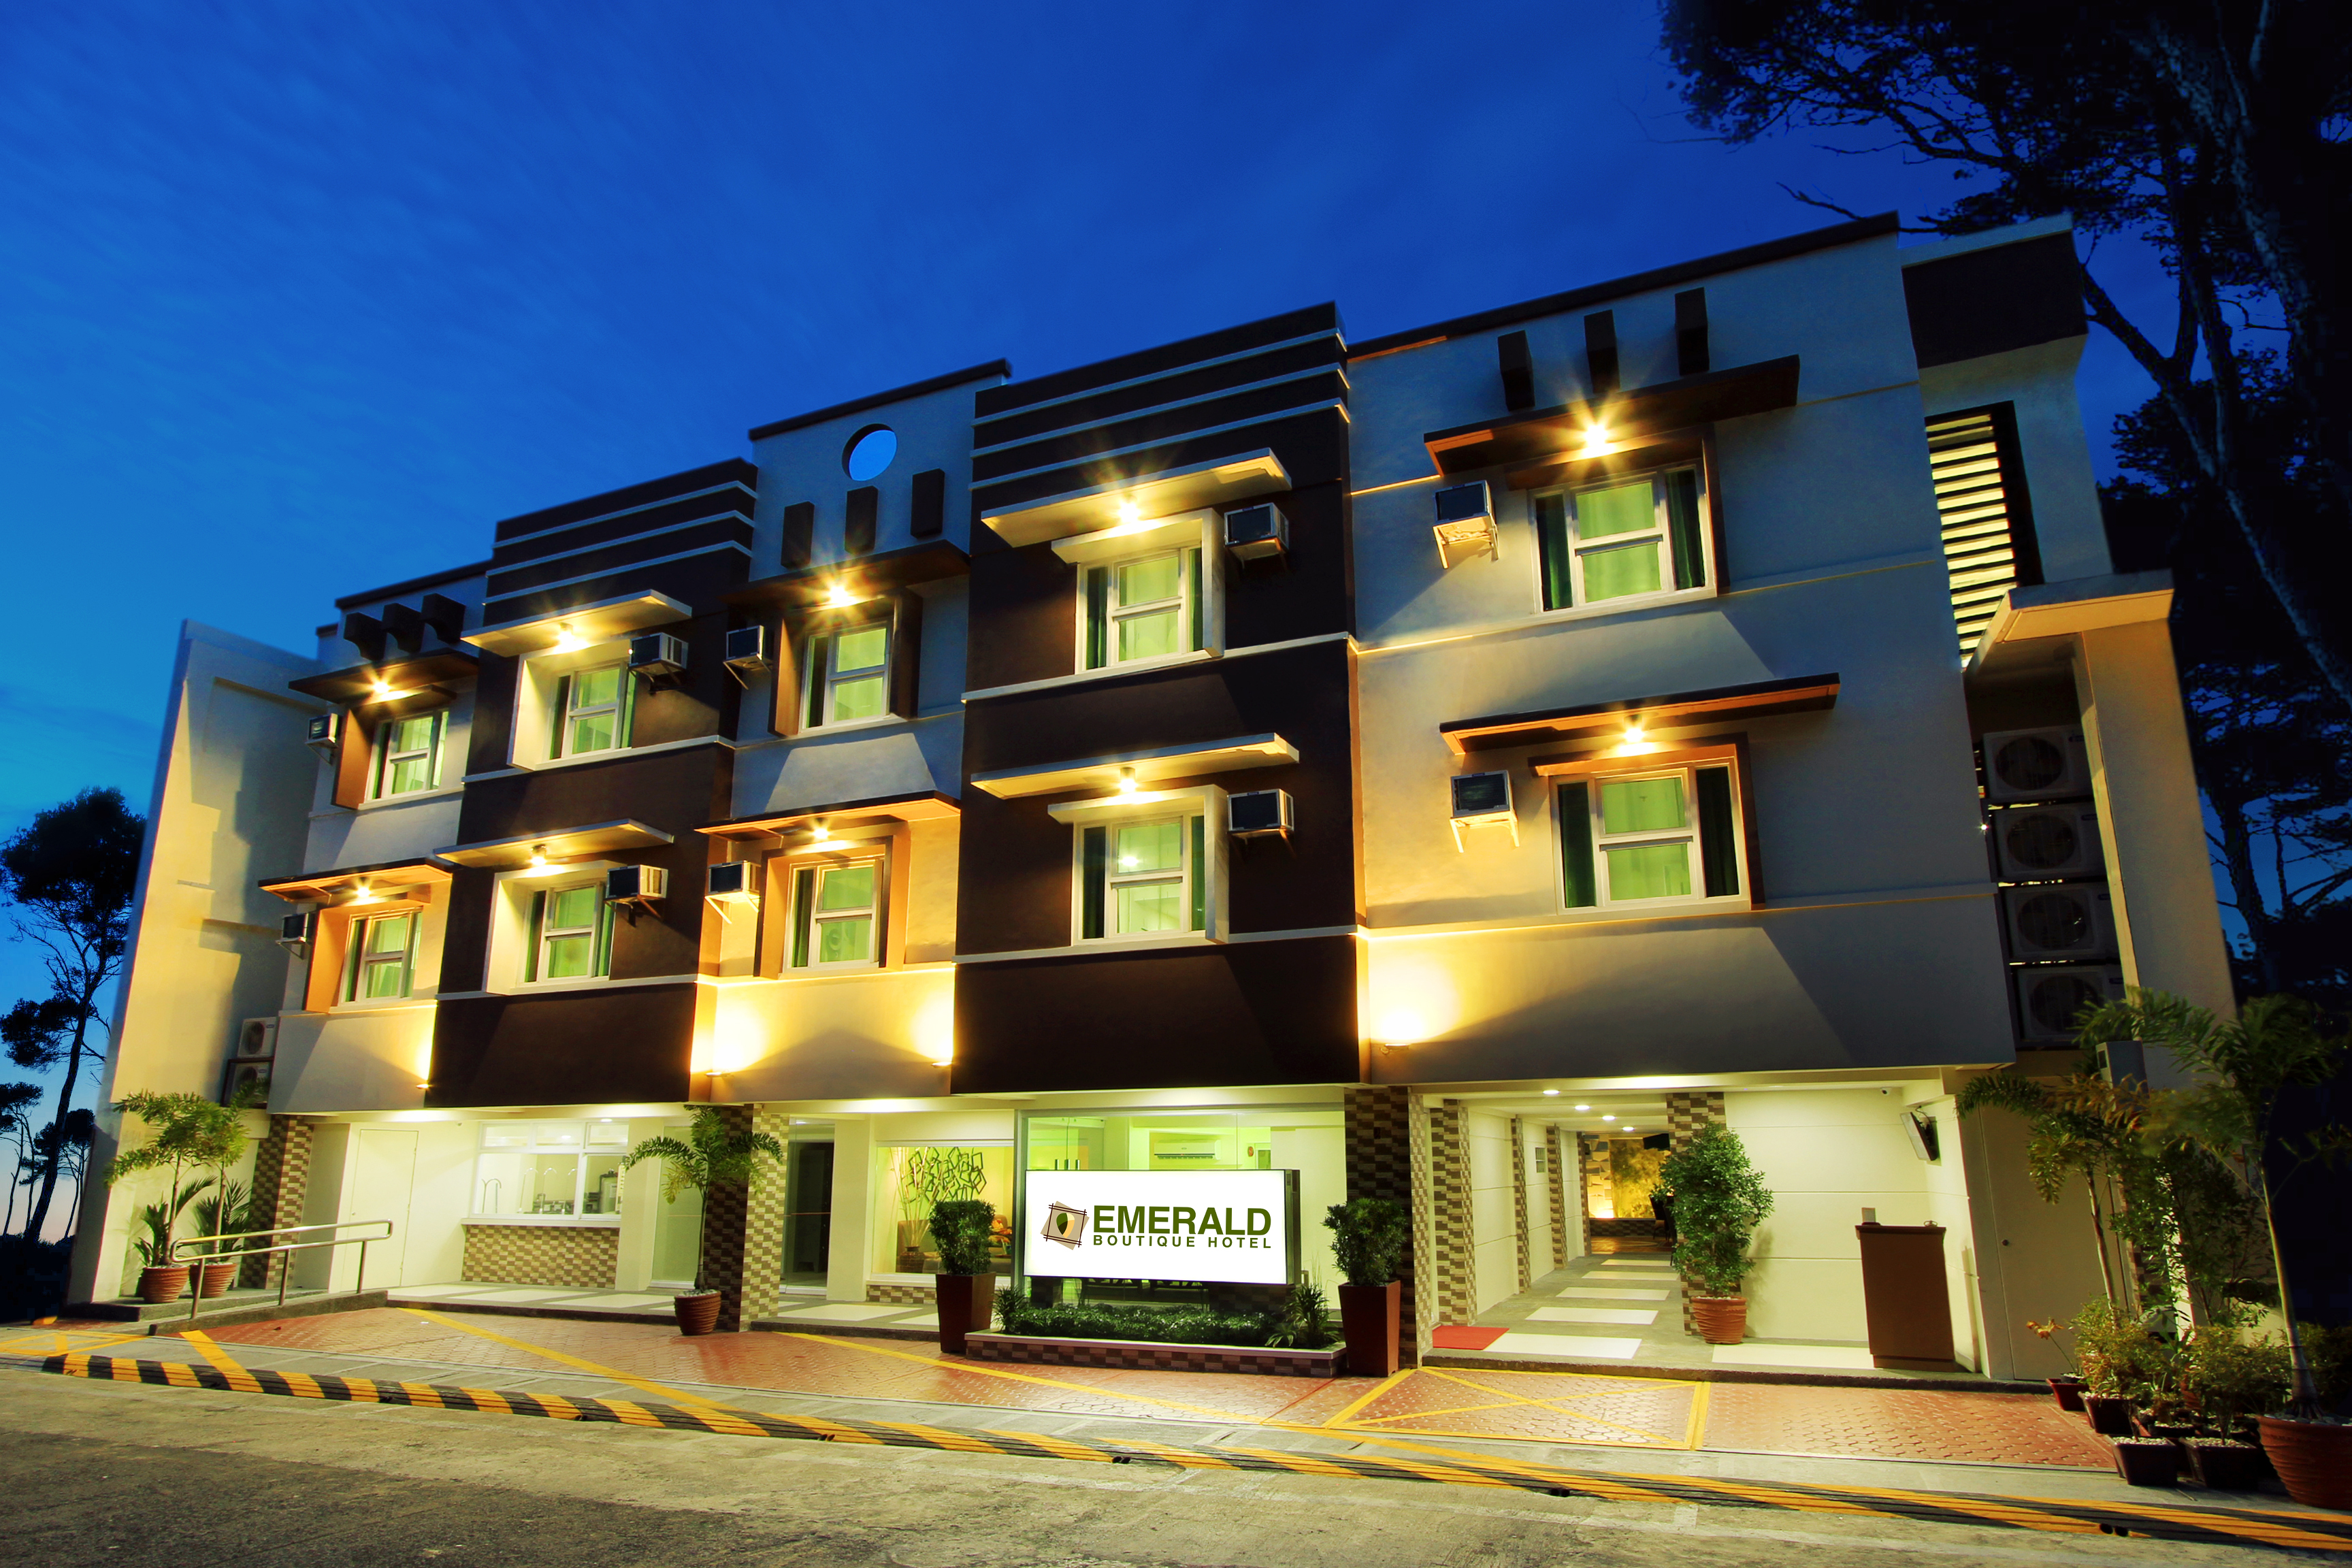 A new boutique hotel opens in legazpi fly me to mayon for Boutique hotel nrw